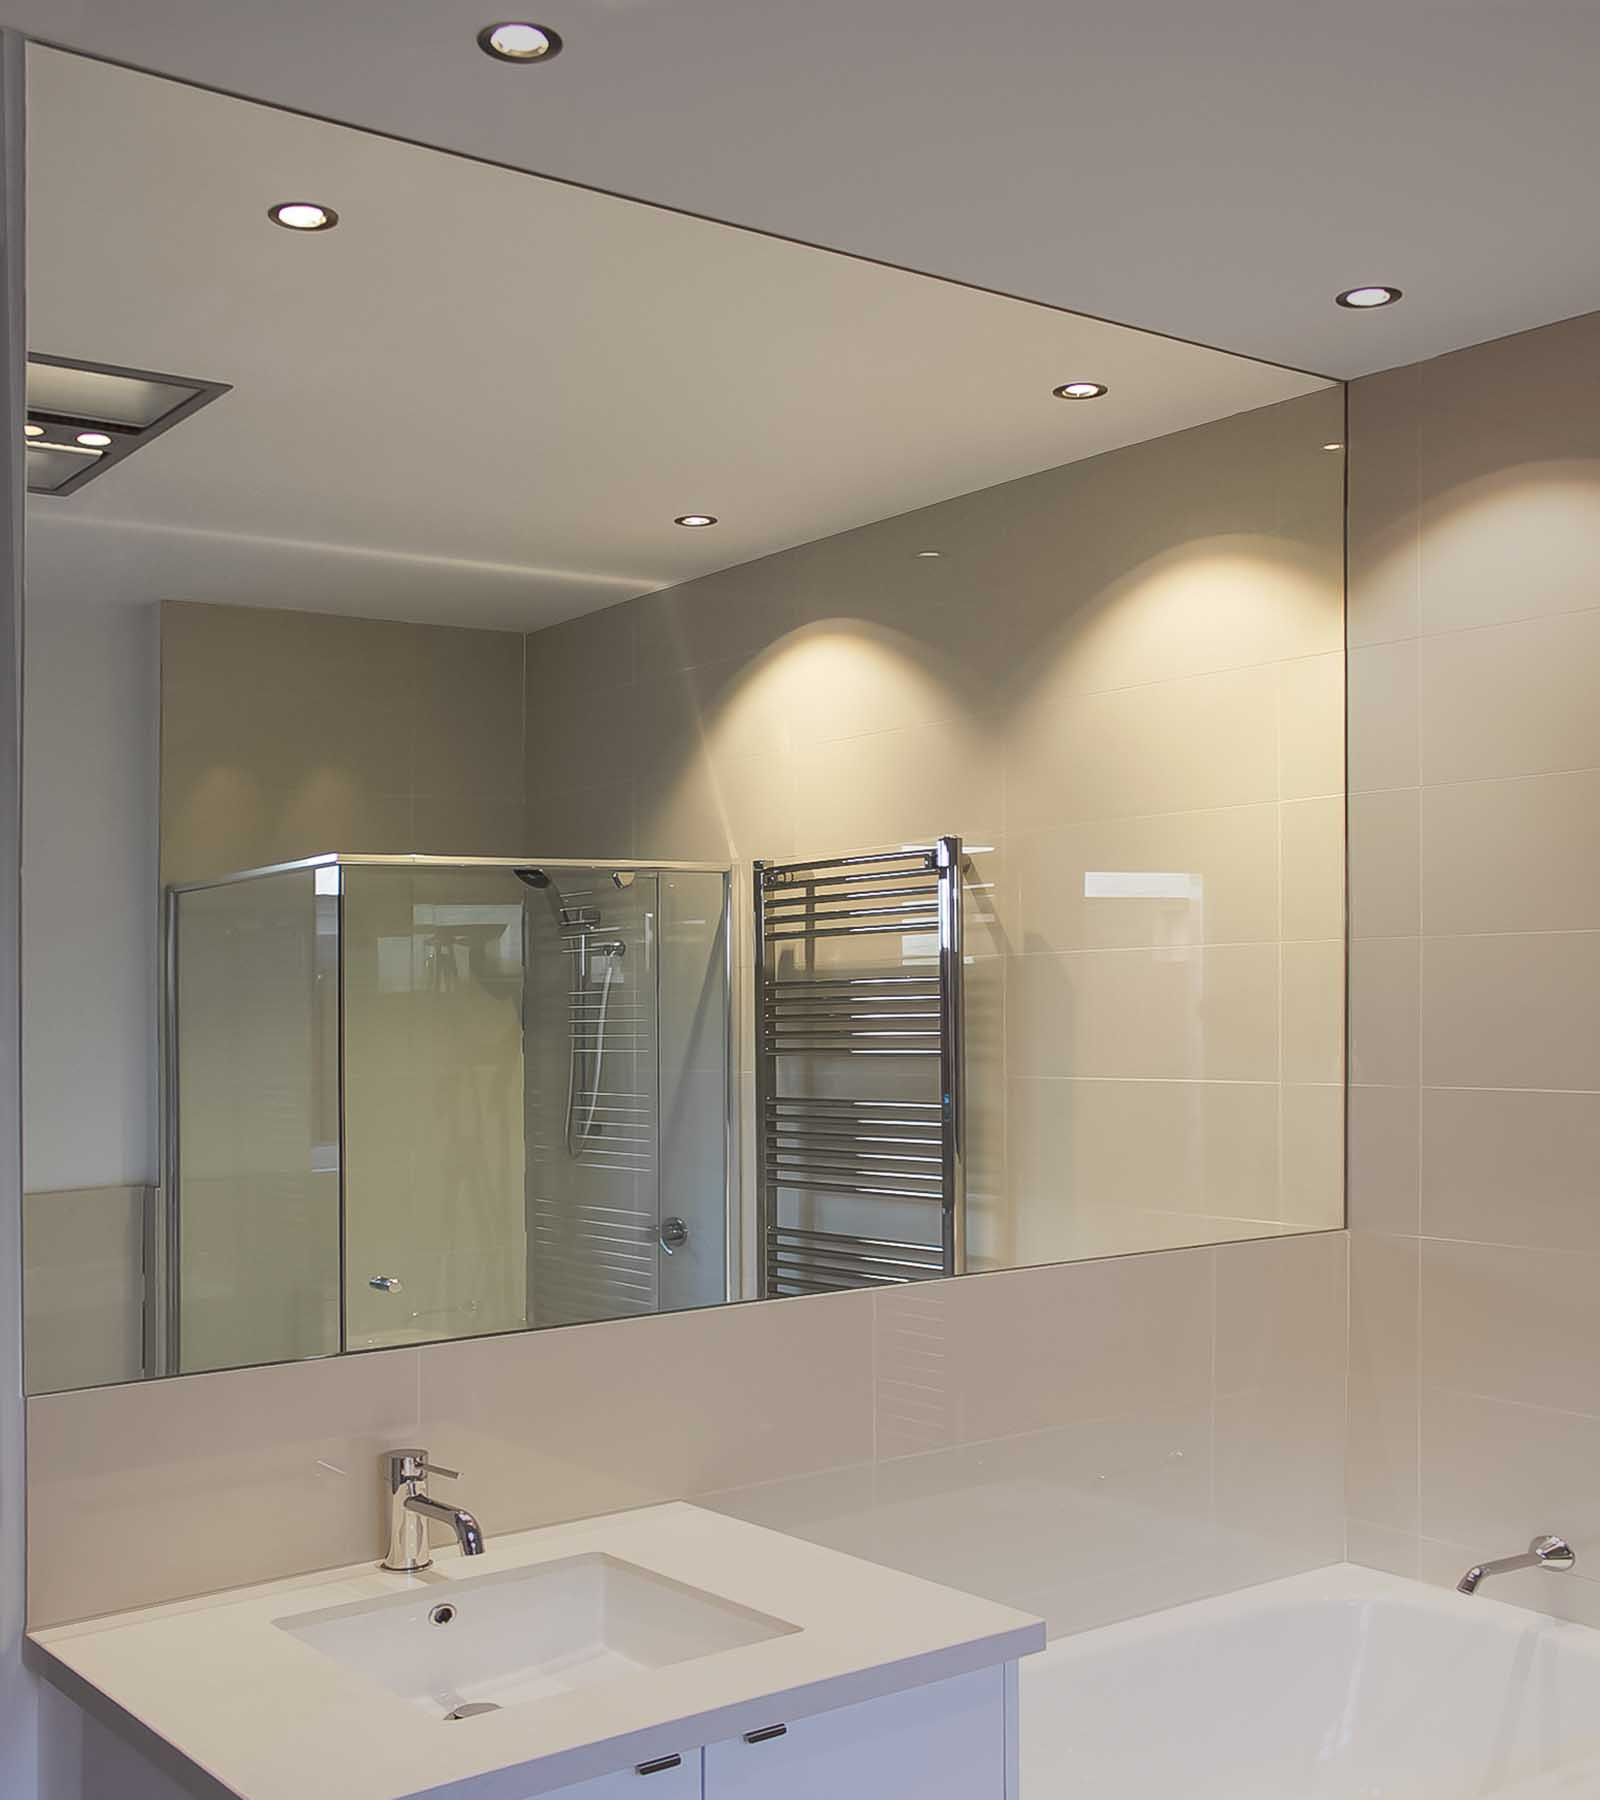 30 perfect bathroom mirrors geelong Small bathroom design melbourne